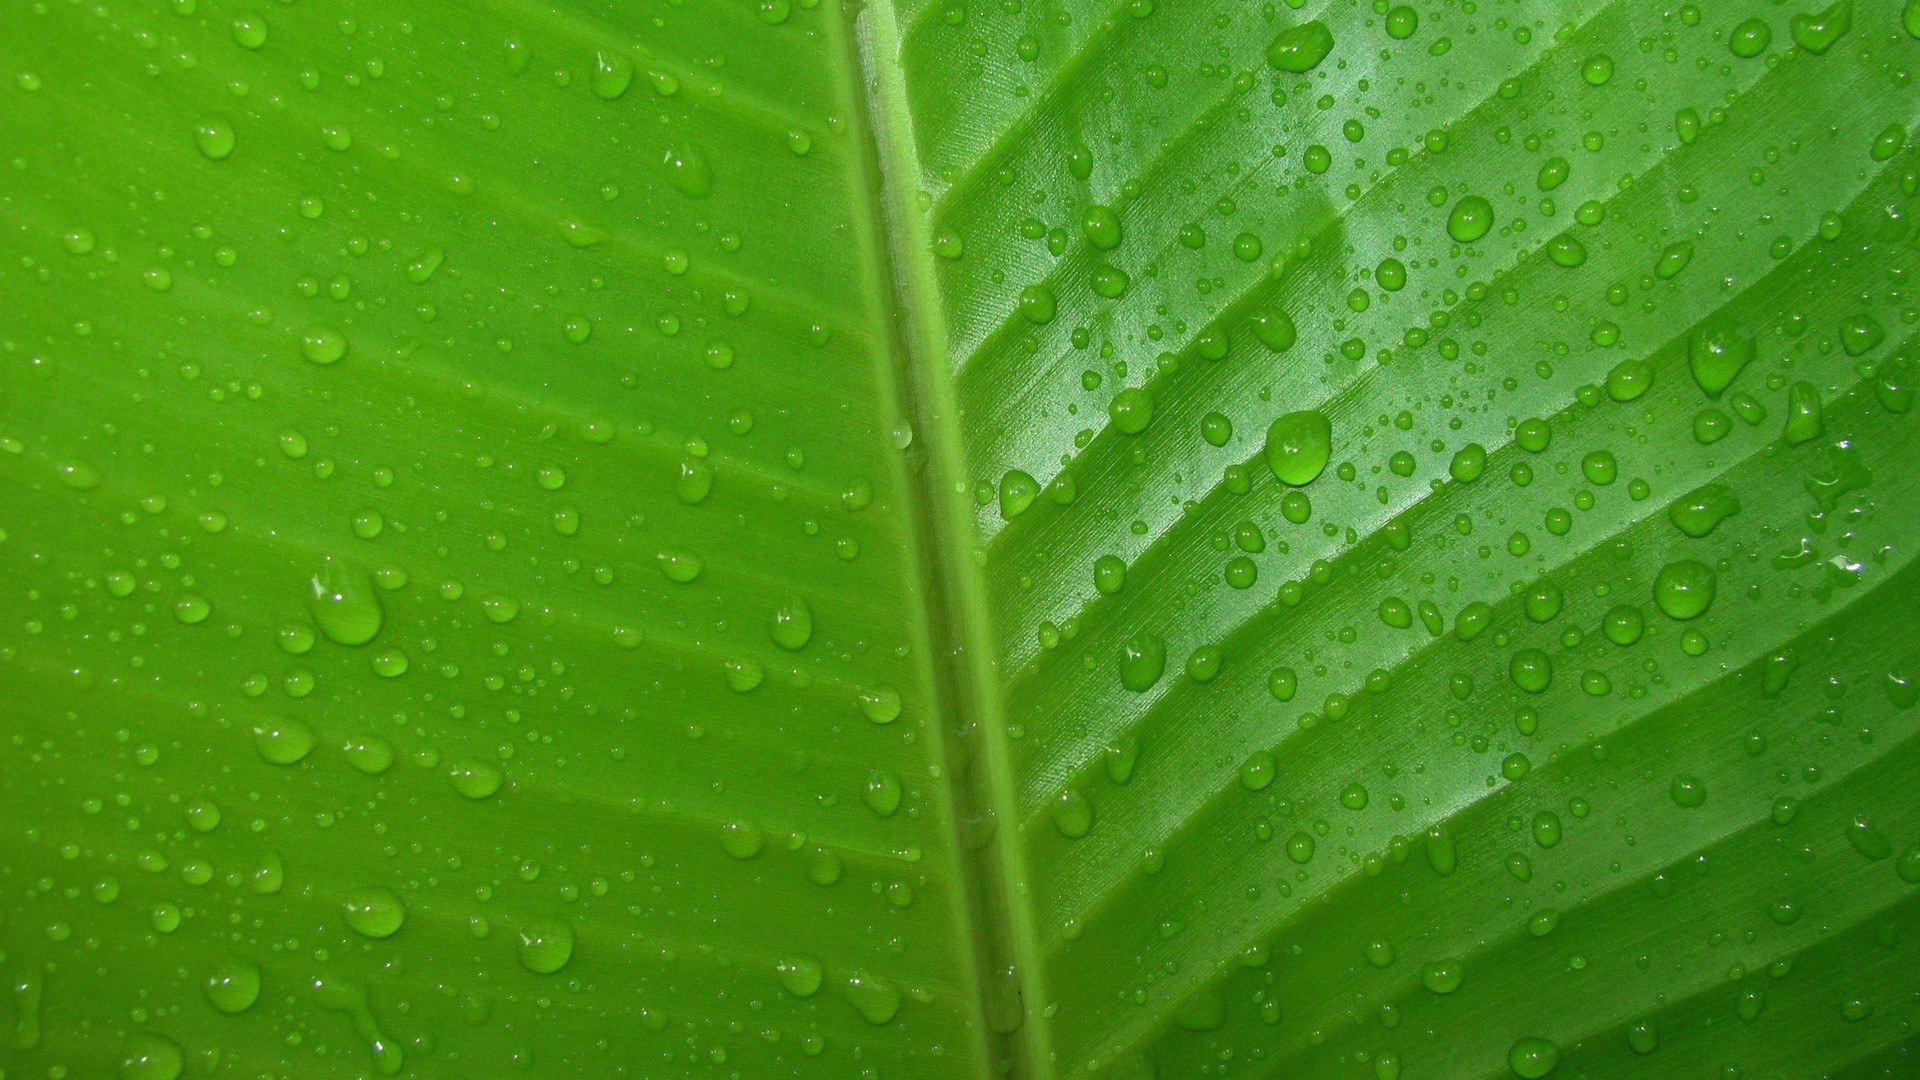 3d Leaves And Water Drop Wallpaper Green Leaves Wallpapers Pixelstalk Net